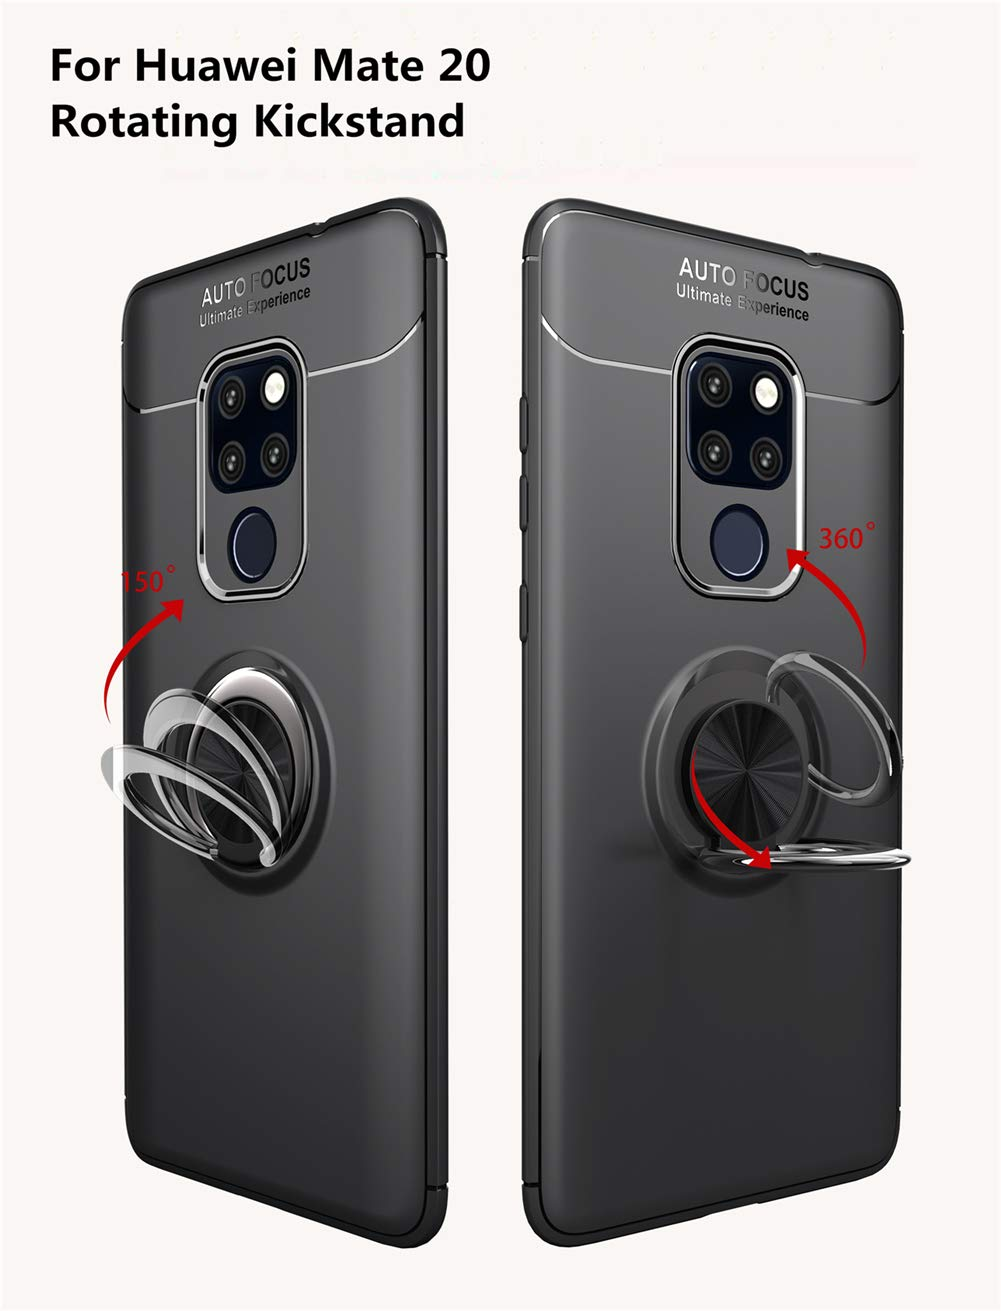 Magnetic Car Mount for Huawei Mate 20 Black//Black Huawei Mate 20 Case,360/° Rotating Ring Kickstand Protective Case,TPU+PC Shock Absorption Double Protection Cover Compatible with